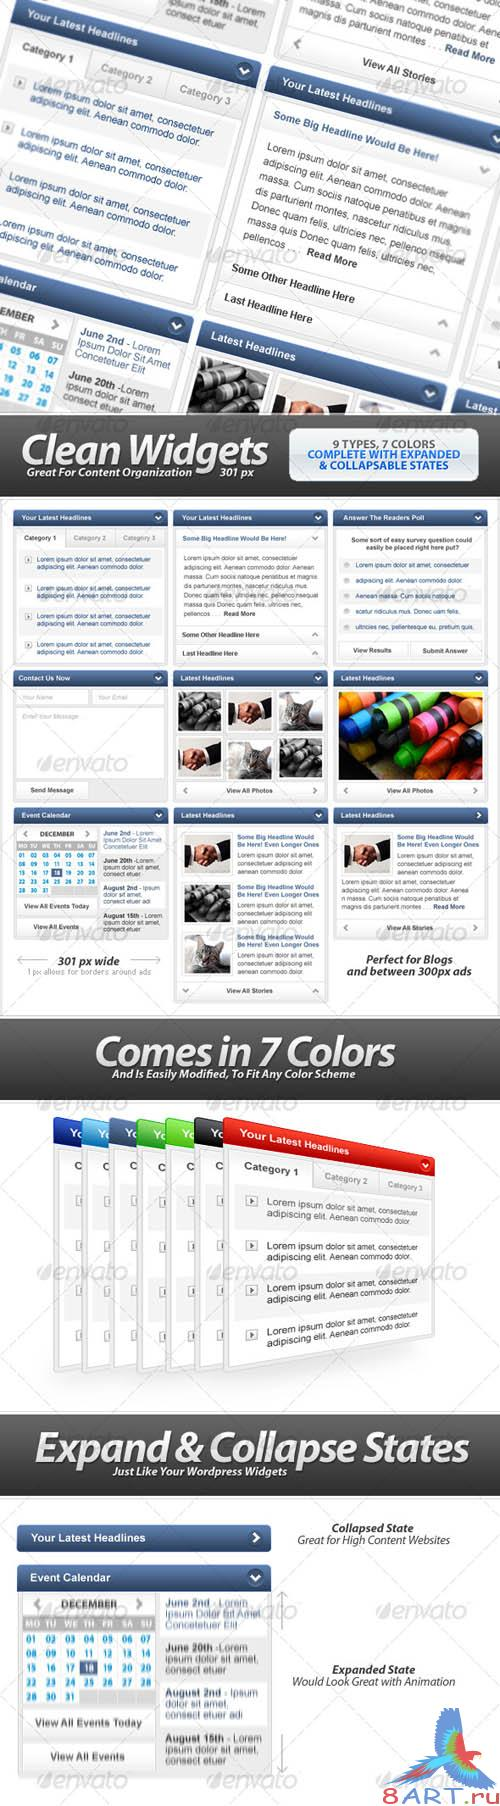 Clean Widgets Designs.For High-Content Sites [GraphicRiver]